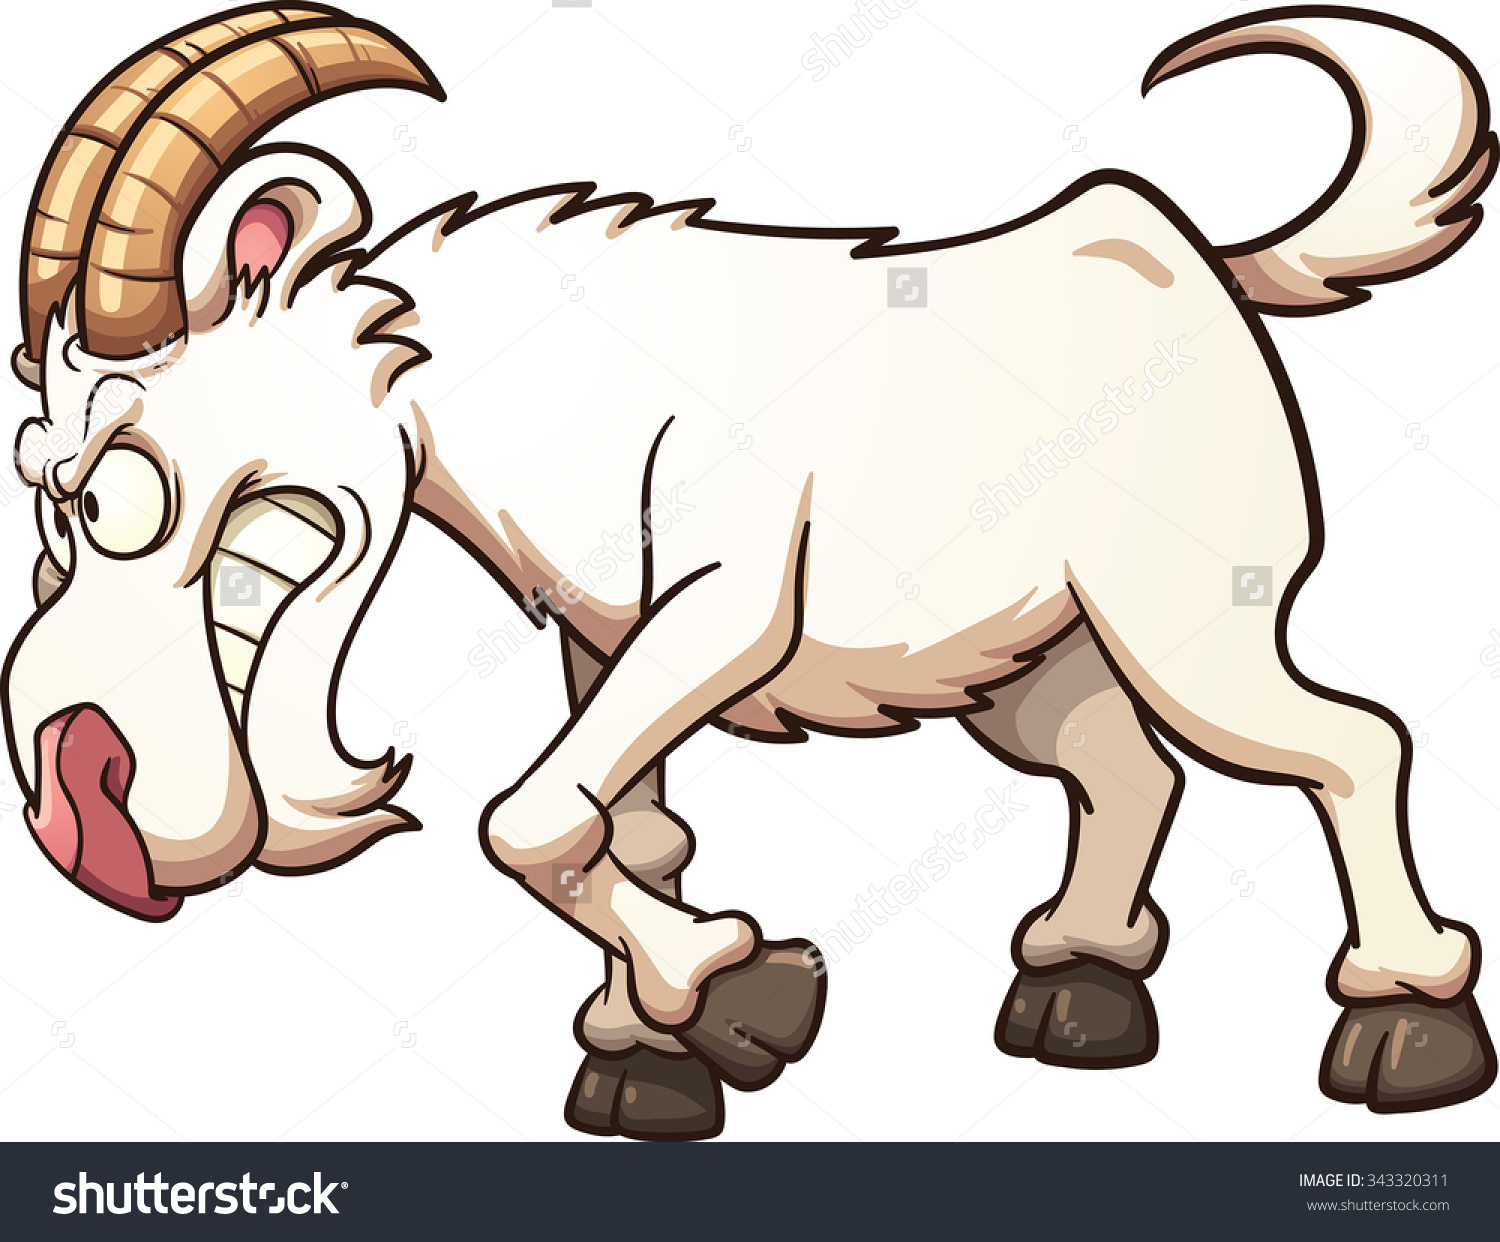 Free download best on. Goat clipart chiva